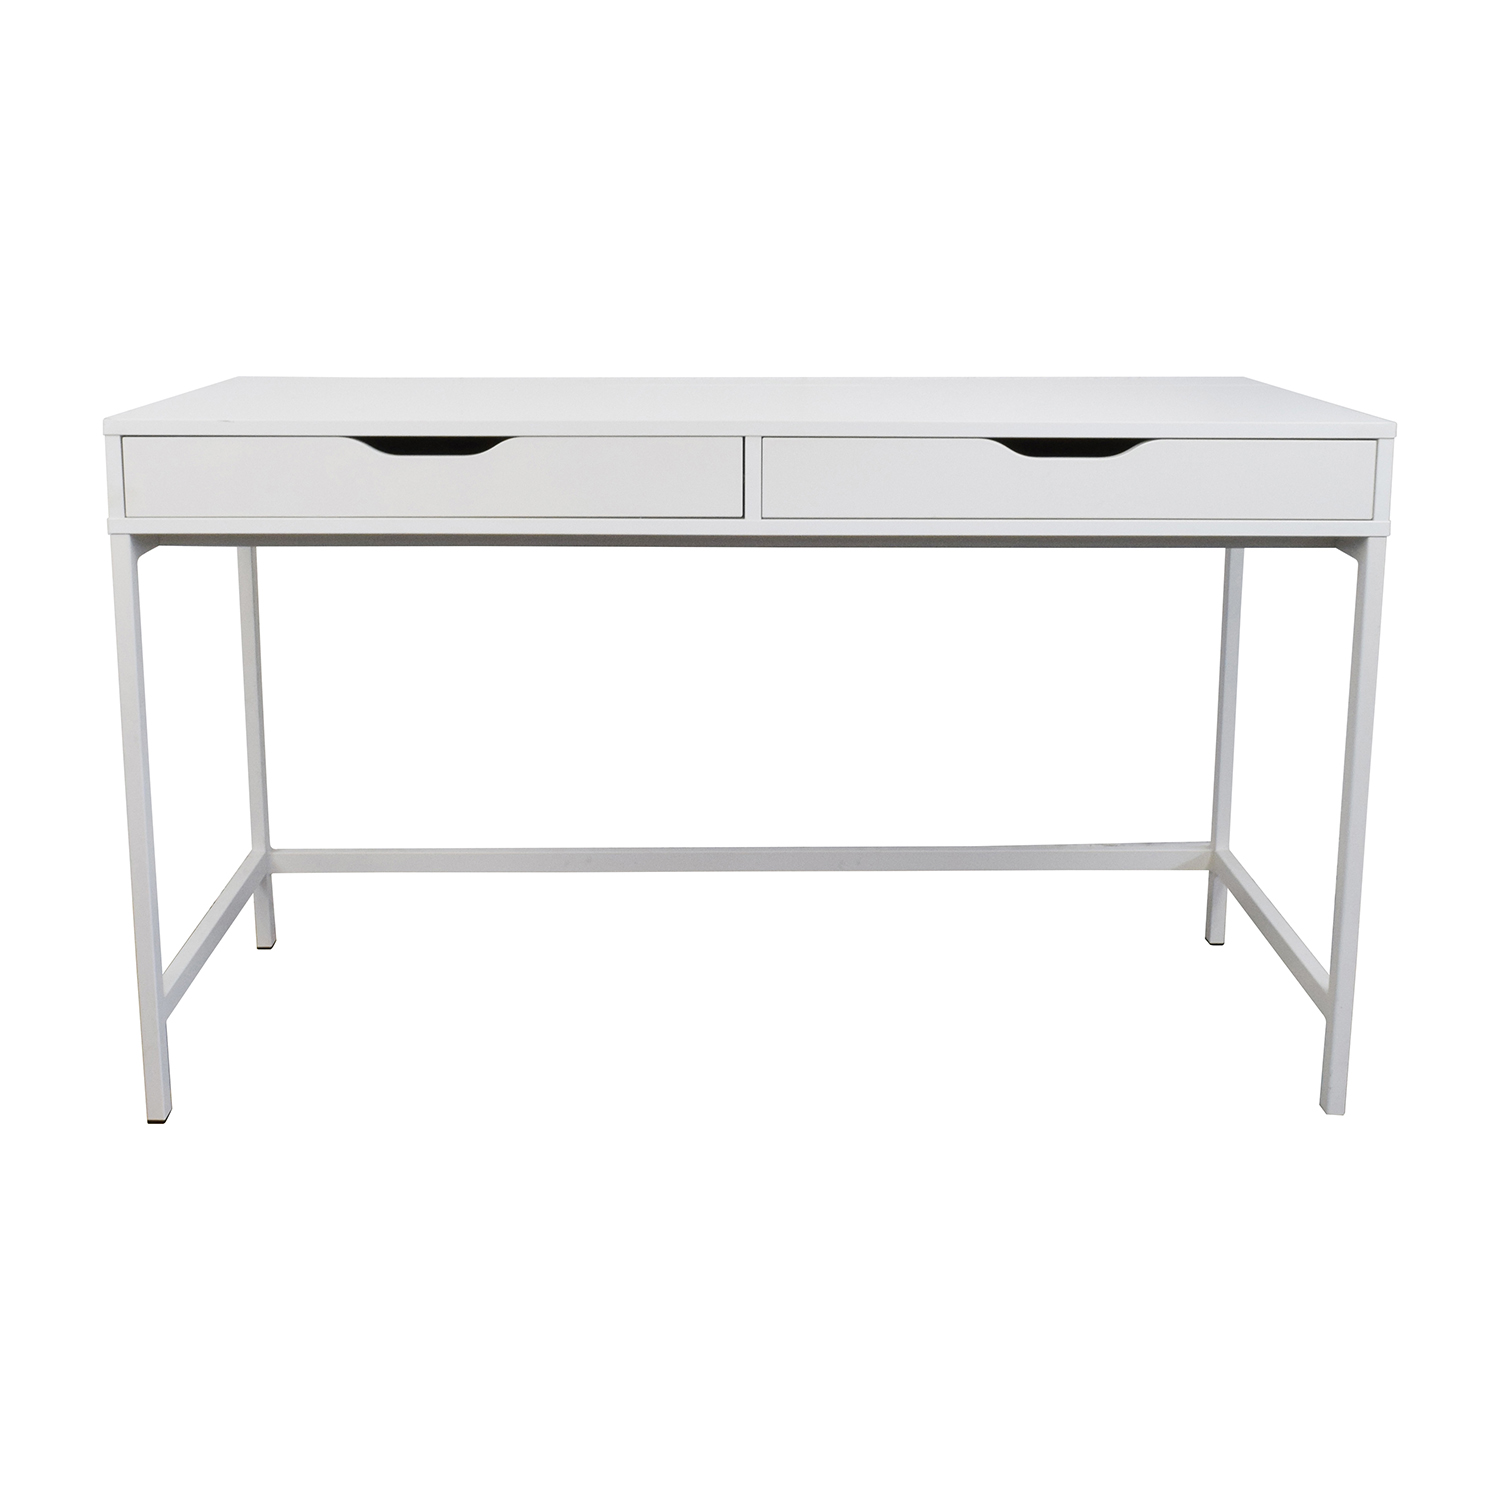 59% OFF - IKEA IKEA Alex White Desk / Tables